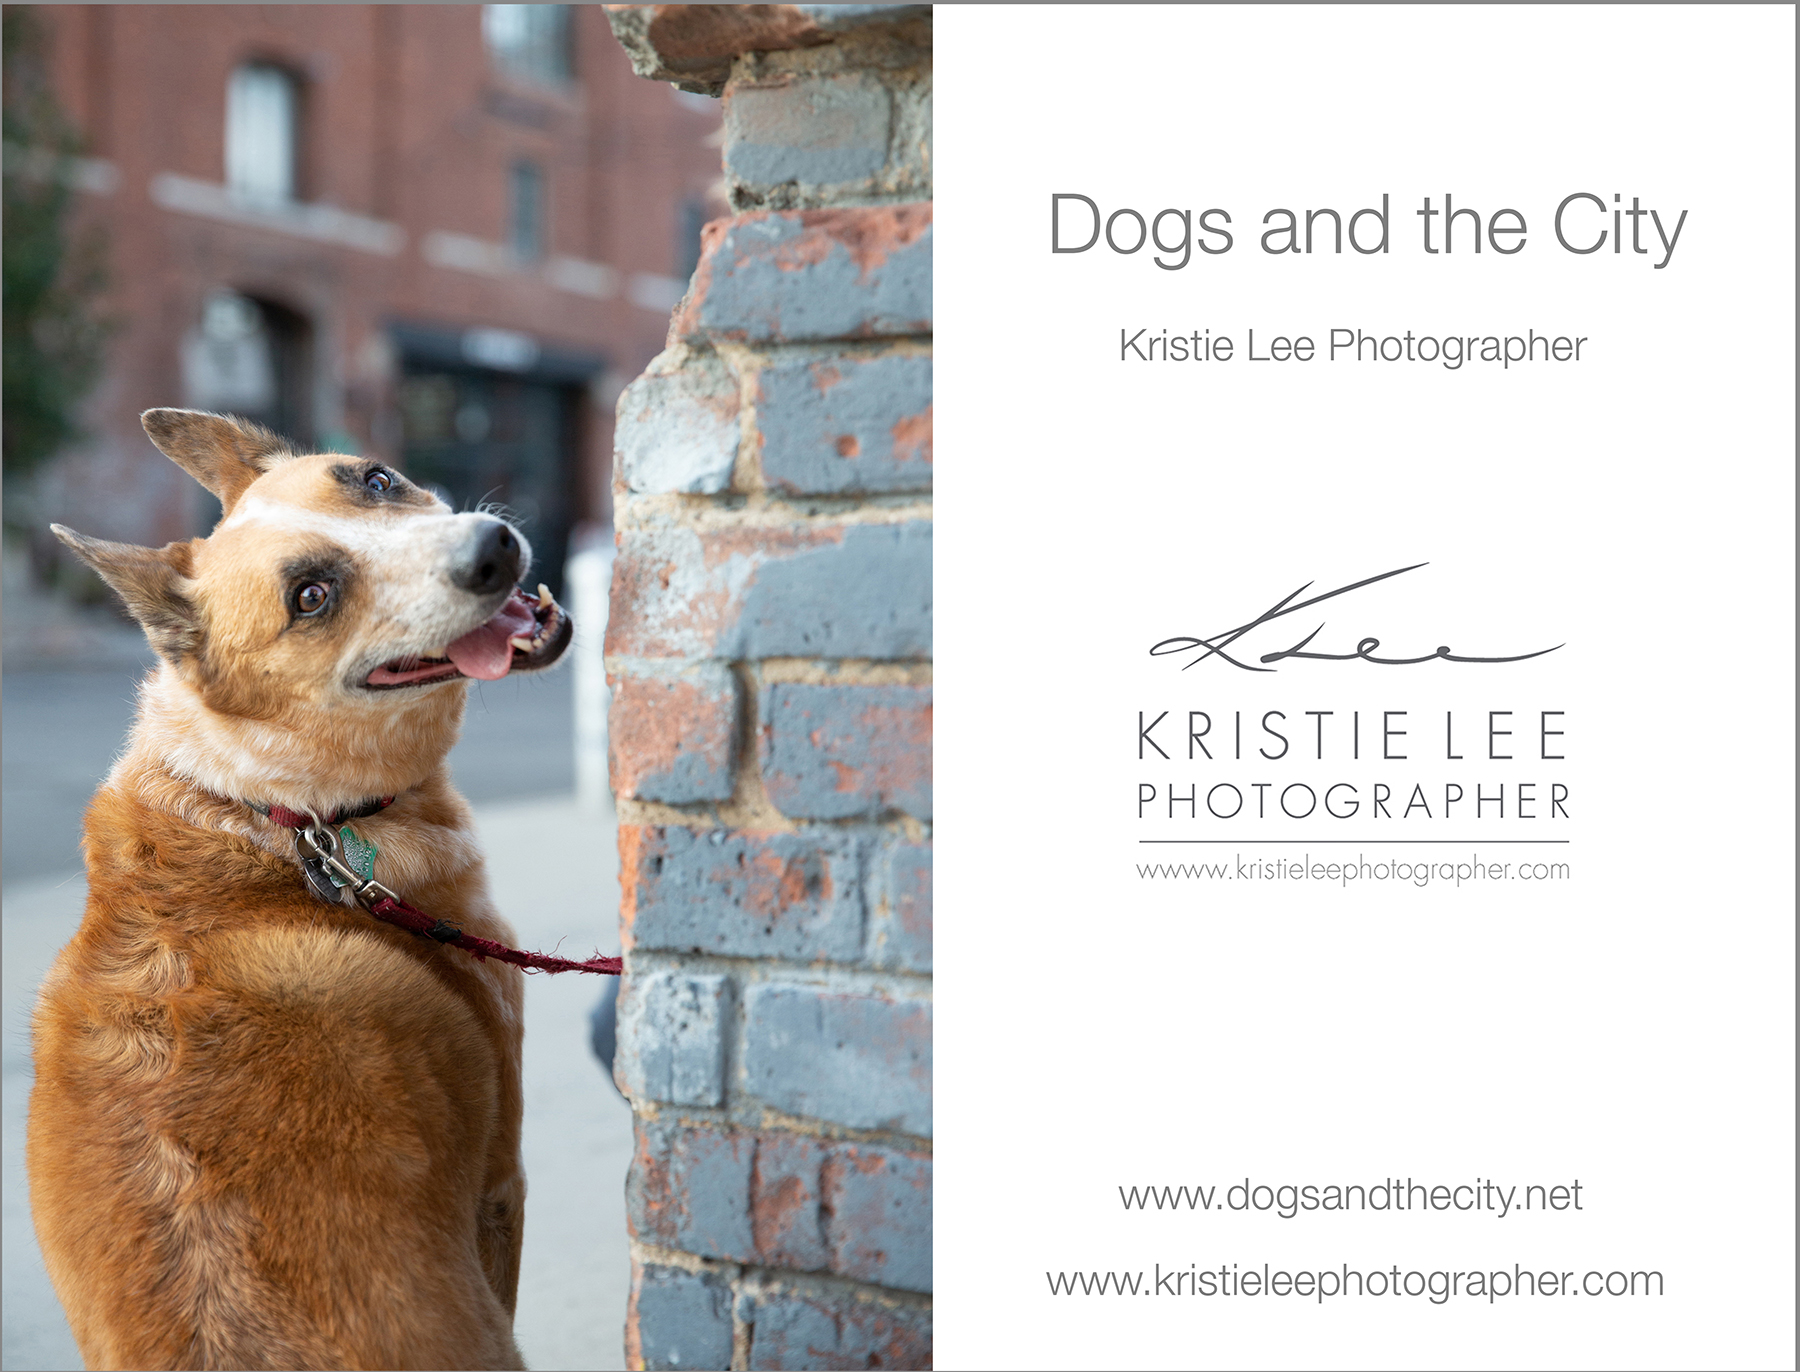 Yolanda dogs_and_the_city kristie_lee_photographer